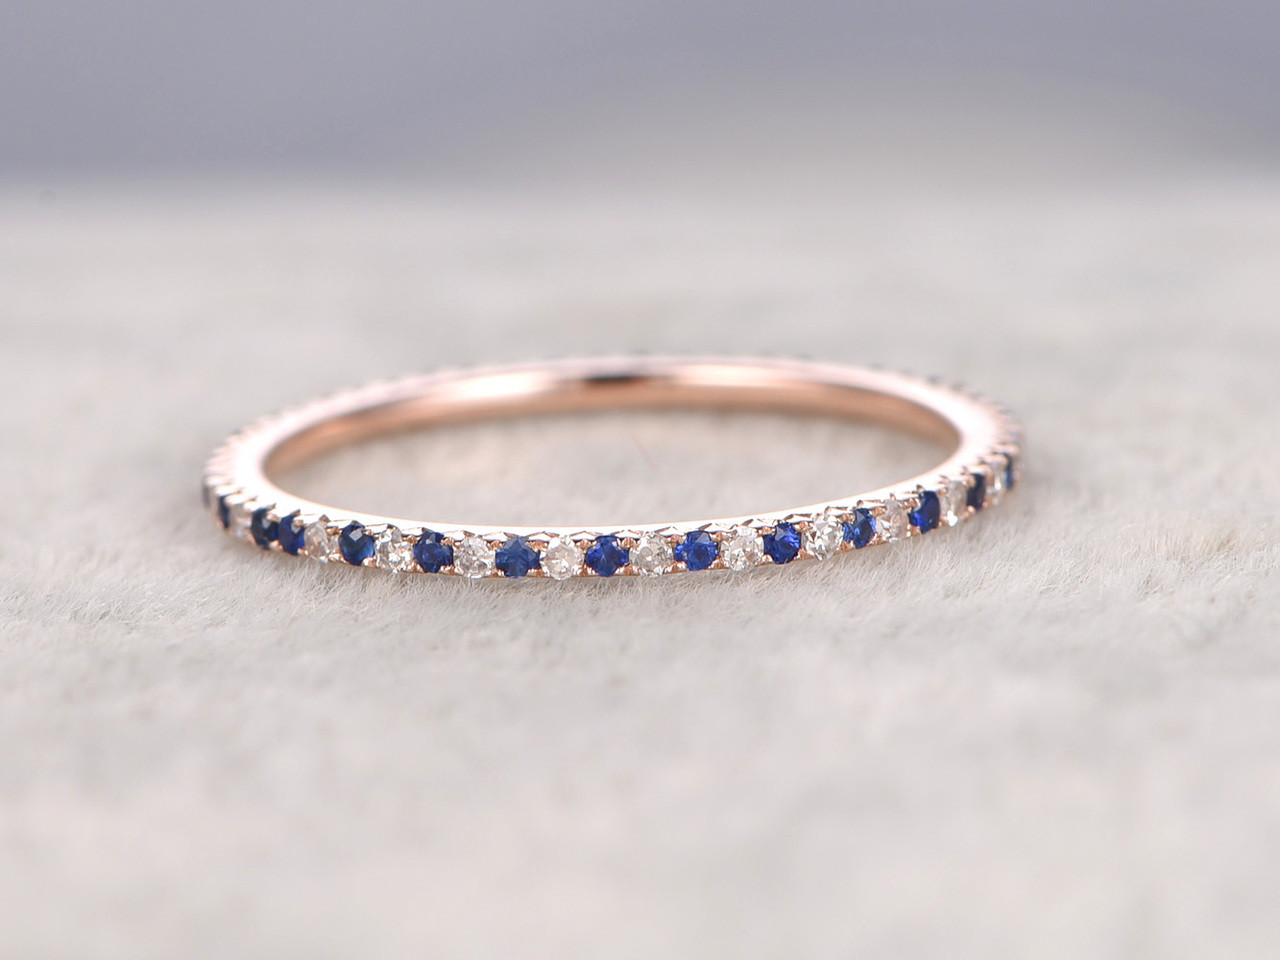 half fullxfull ring white blue il matching anniversary natural gold wedding solid band eternity diamond rings stacking engagement sapphire bands